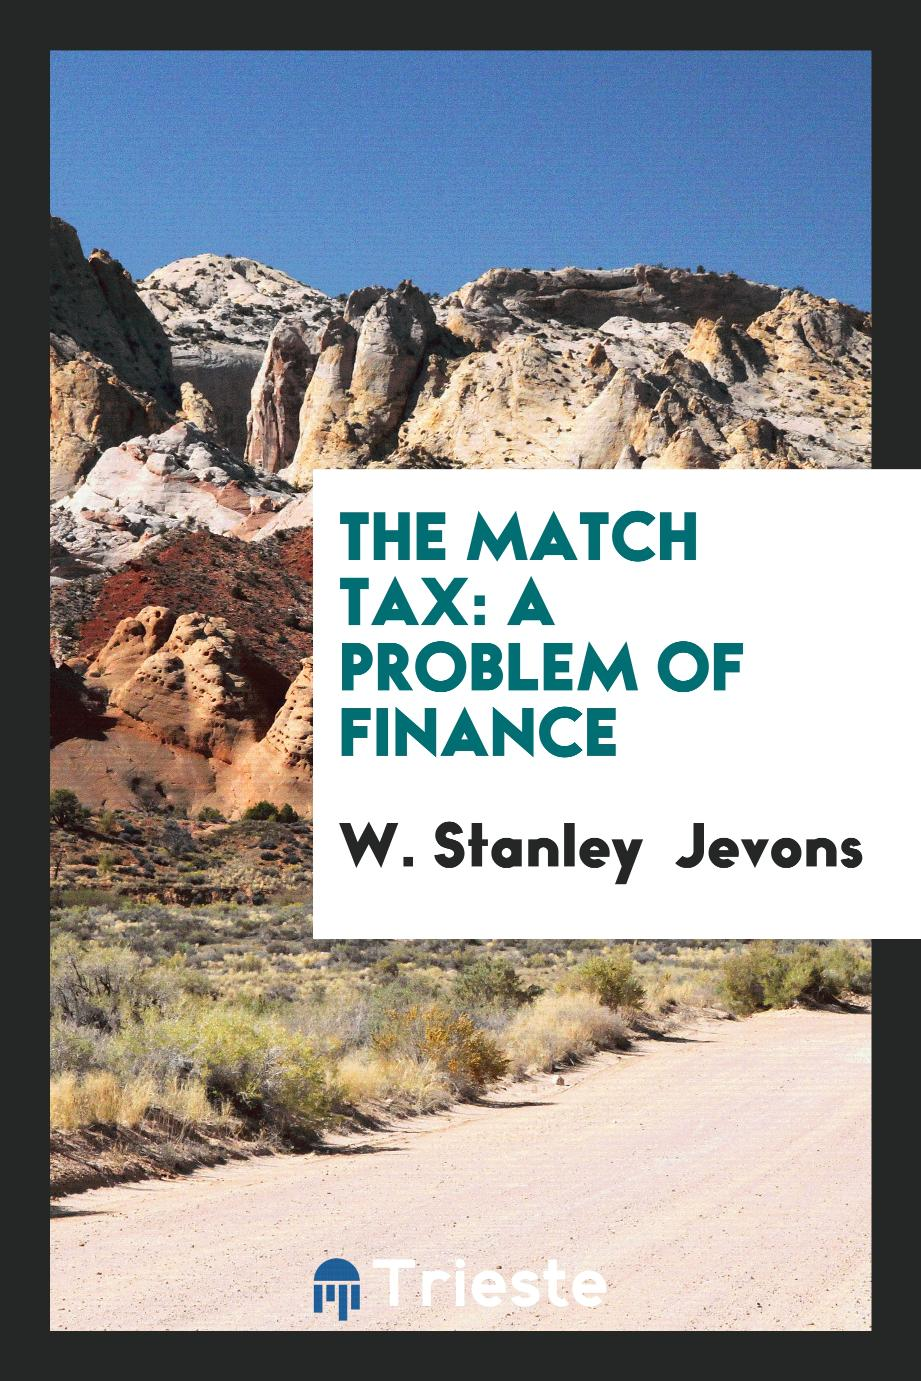 The Match Tax: A Problem of Finance